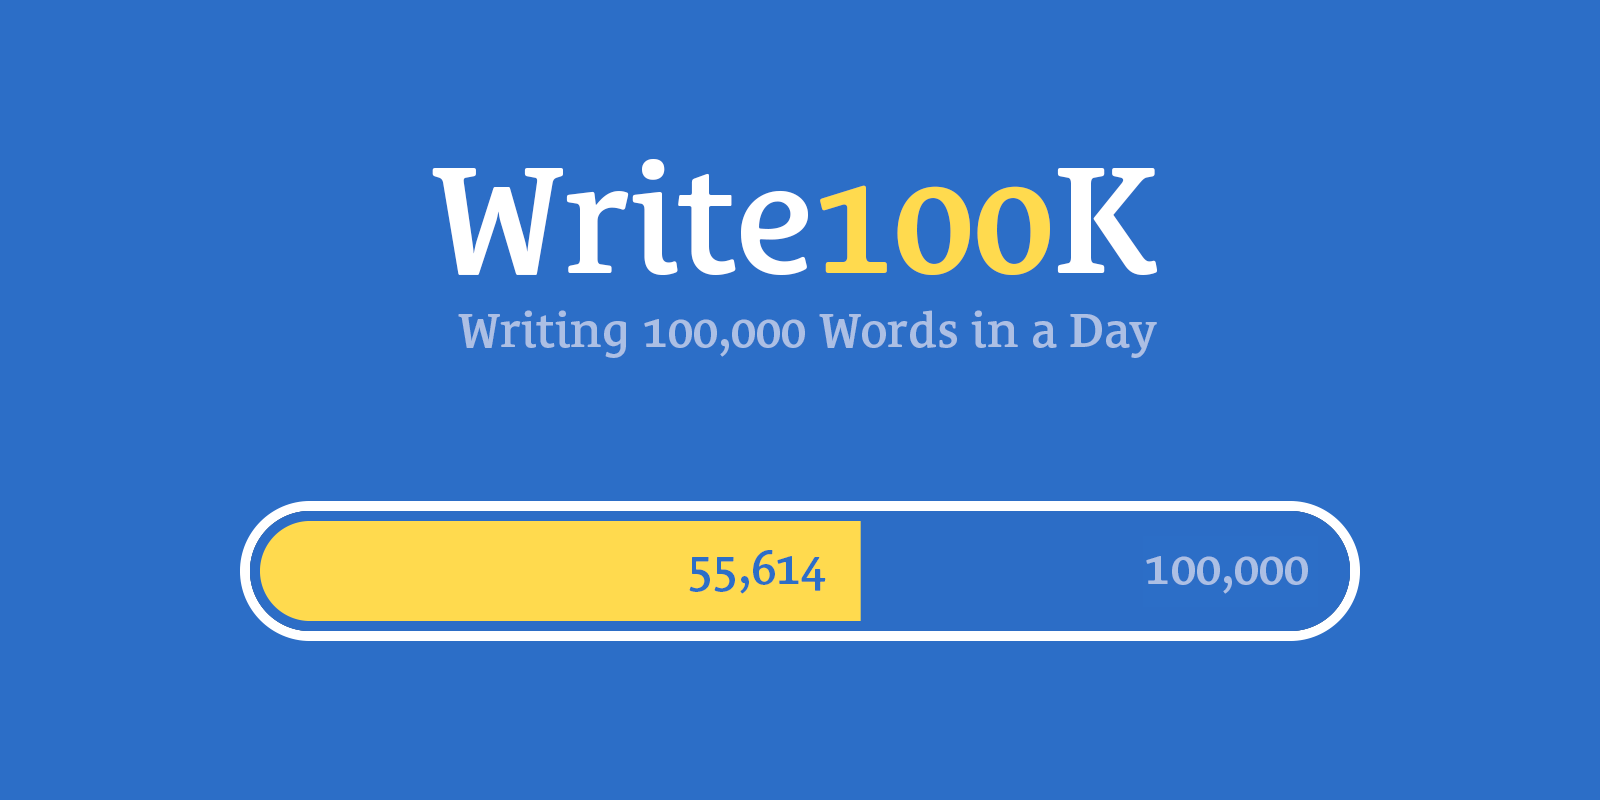 I Tried to Write 100,000 Words in a Day and Failed Spectacularly